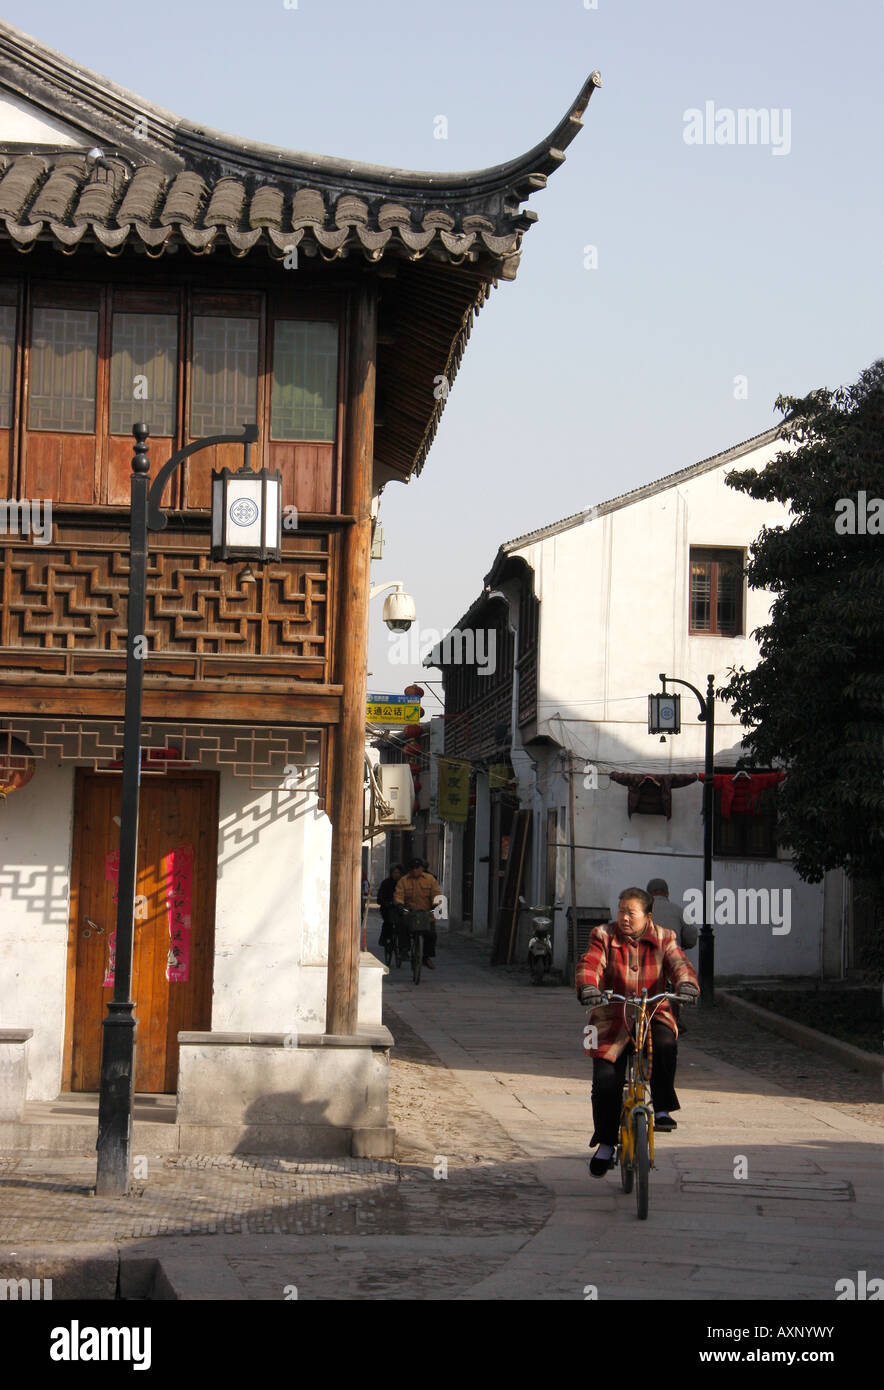 Chinese woman cycling in the 'old town' of Suzhou,China - Stock Image